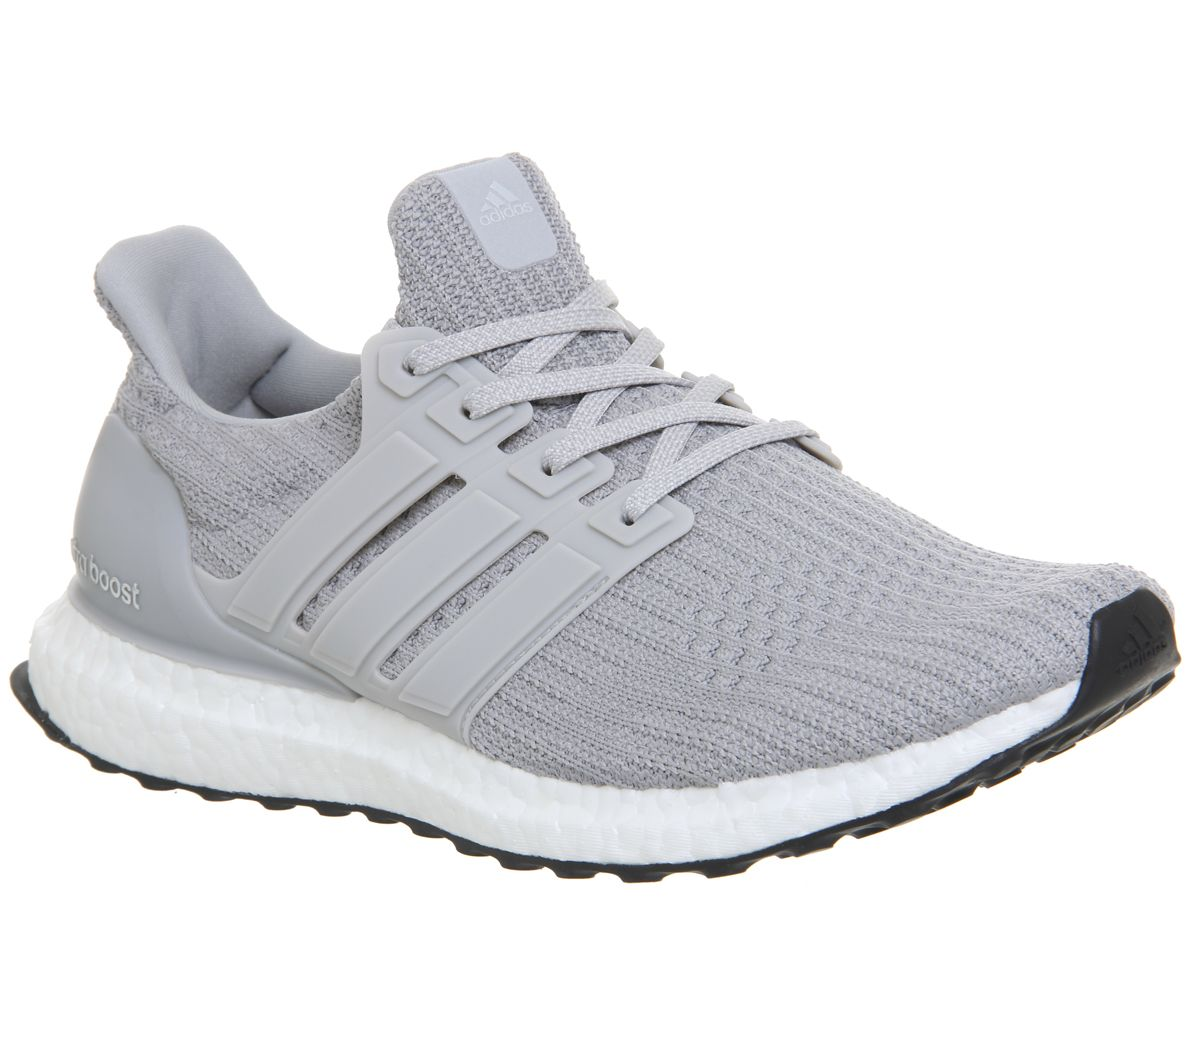 d8edf9611 adidas Ultraboost Ultra Boost Trainers Grey Grey Core Black - His ...